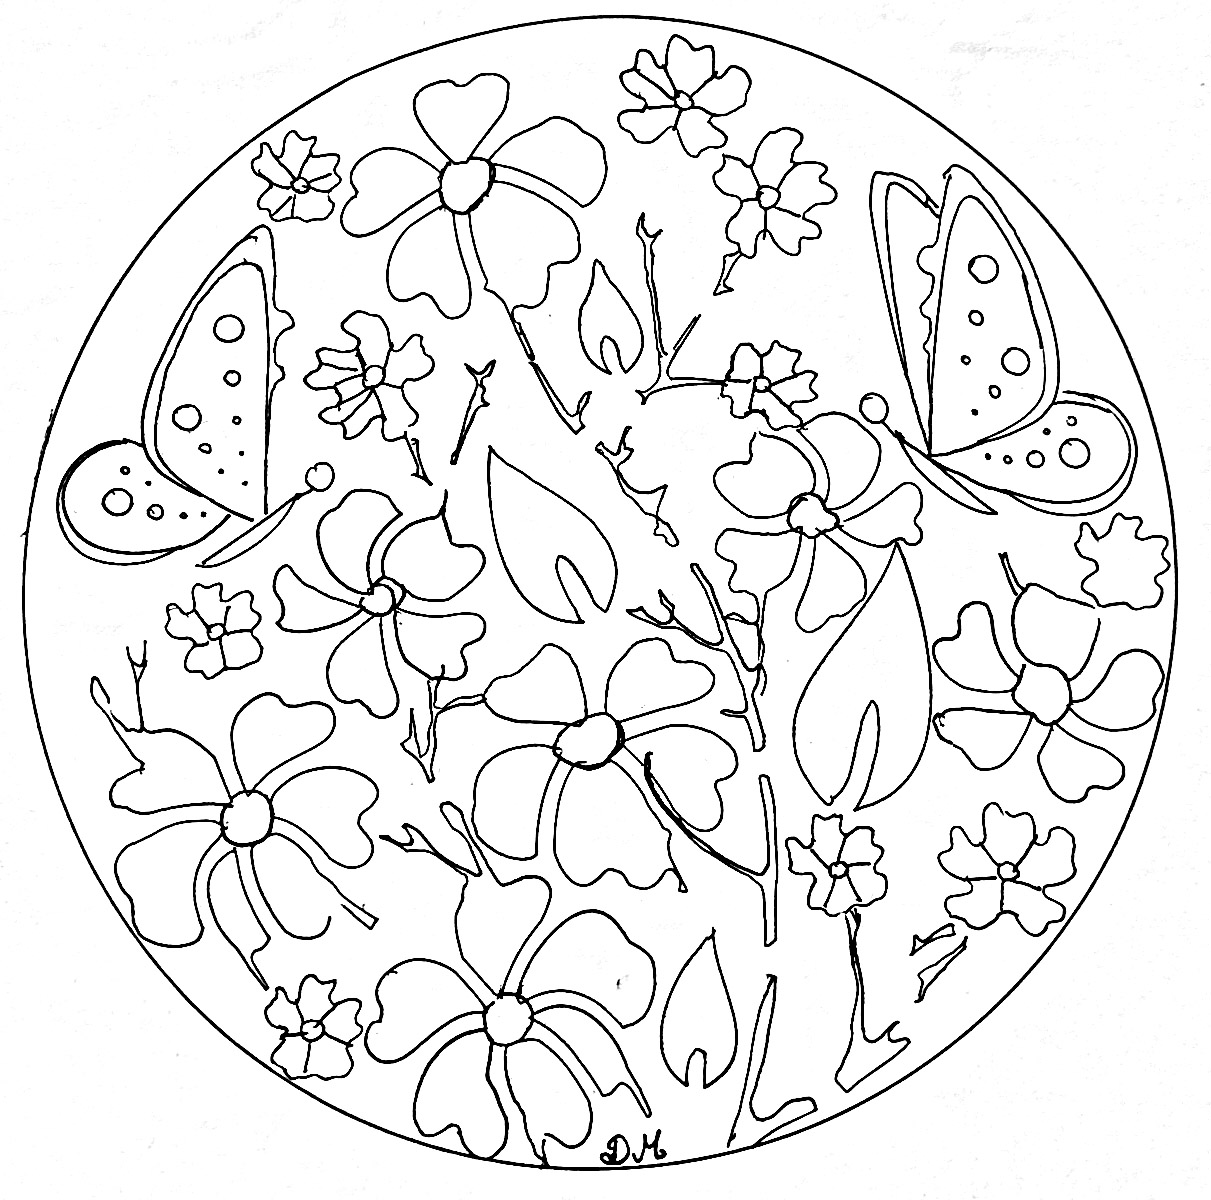 Mandala domandalas flowers butterflies - M&alas Adult Coloring Pages